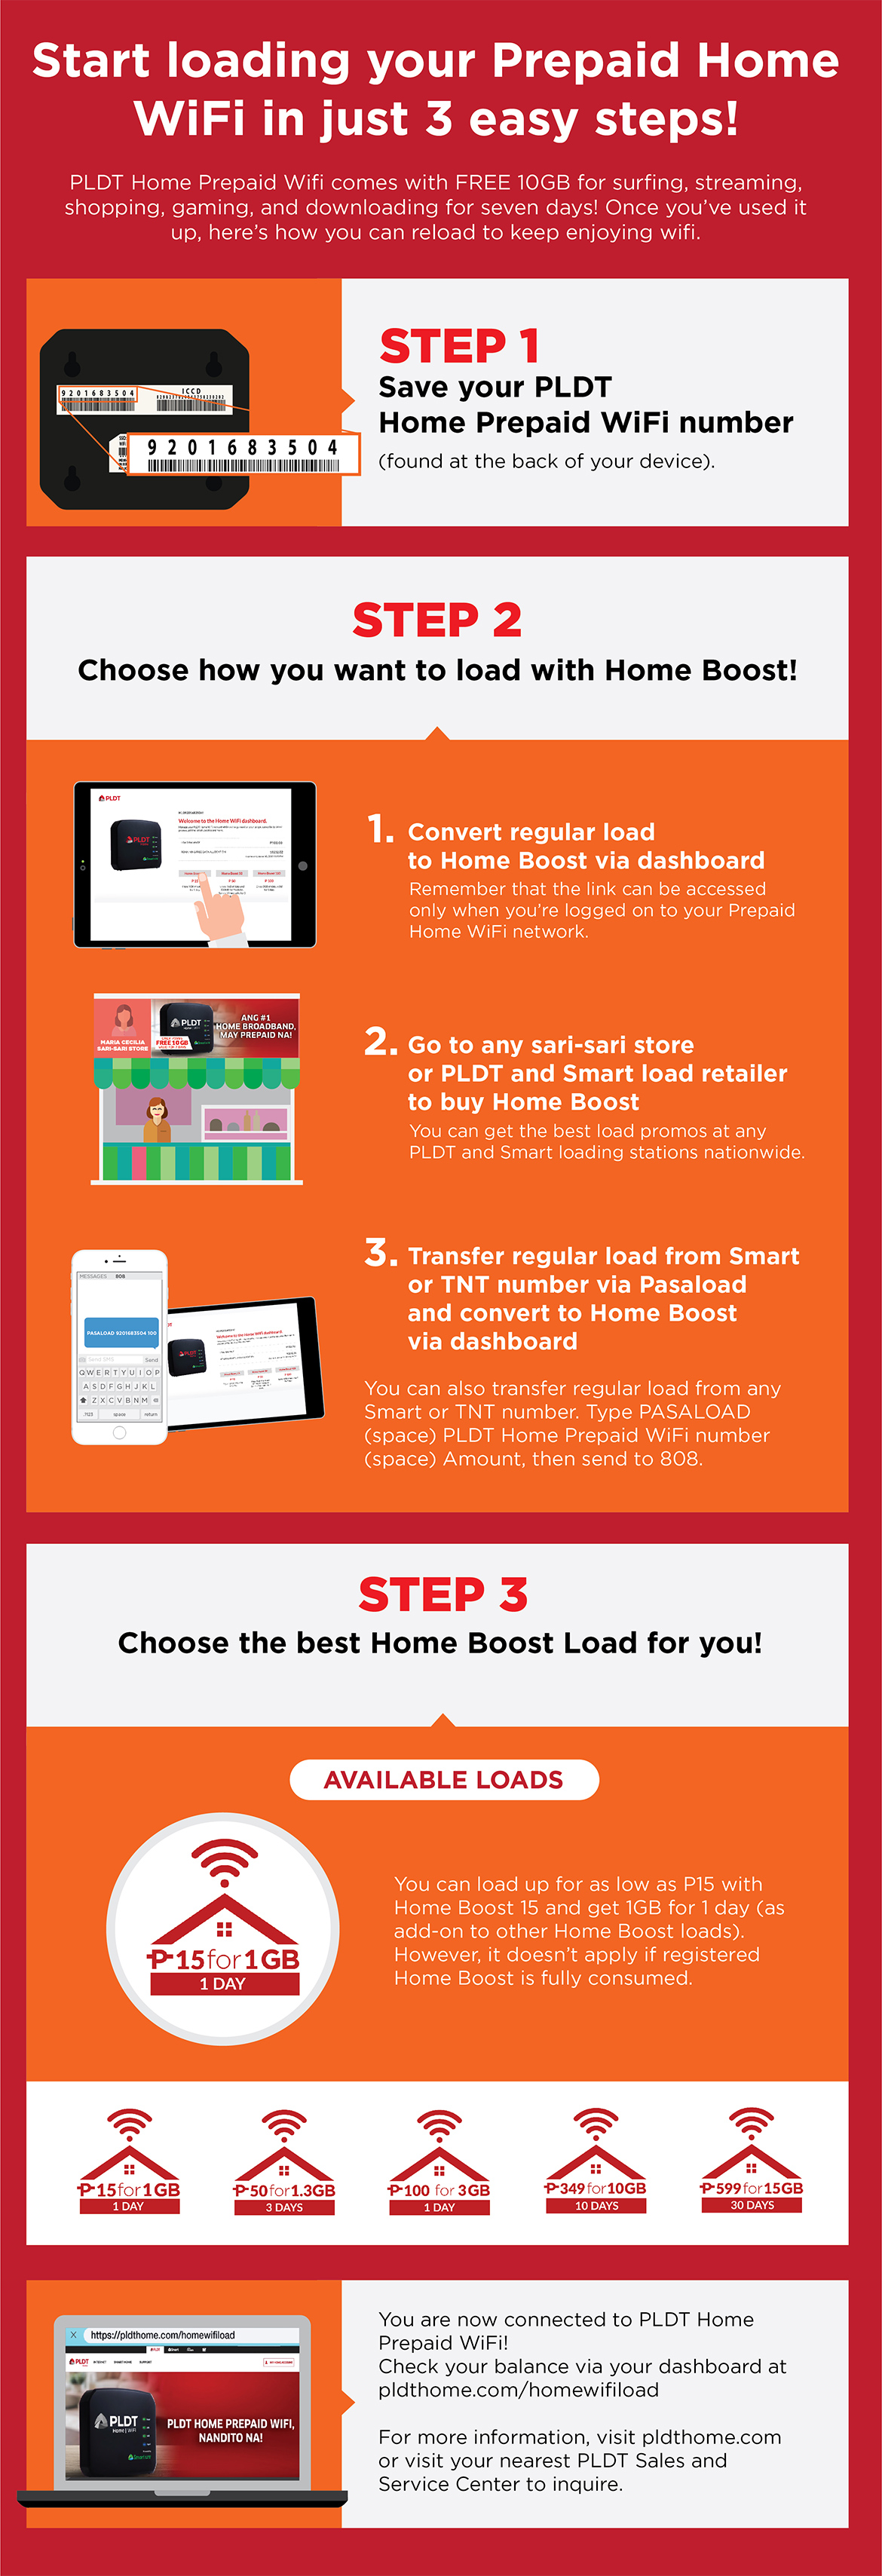 LOOK: Loading your PLDT Home Prepaid Wifi is so Easy!